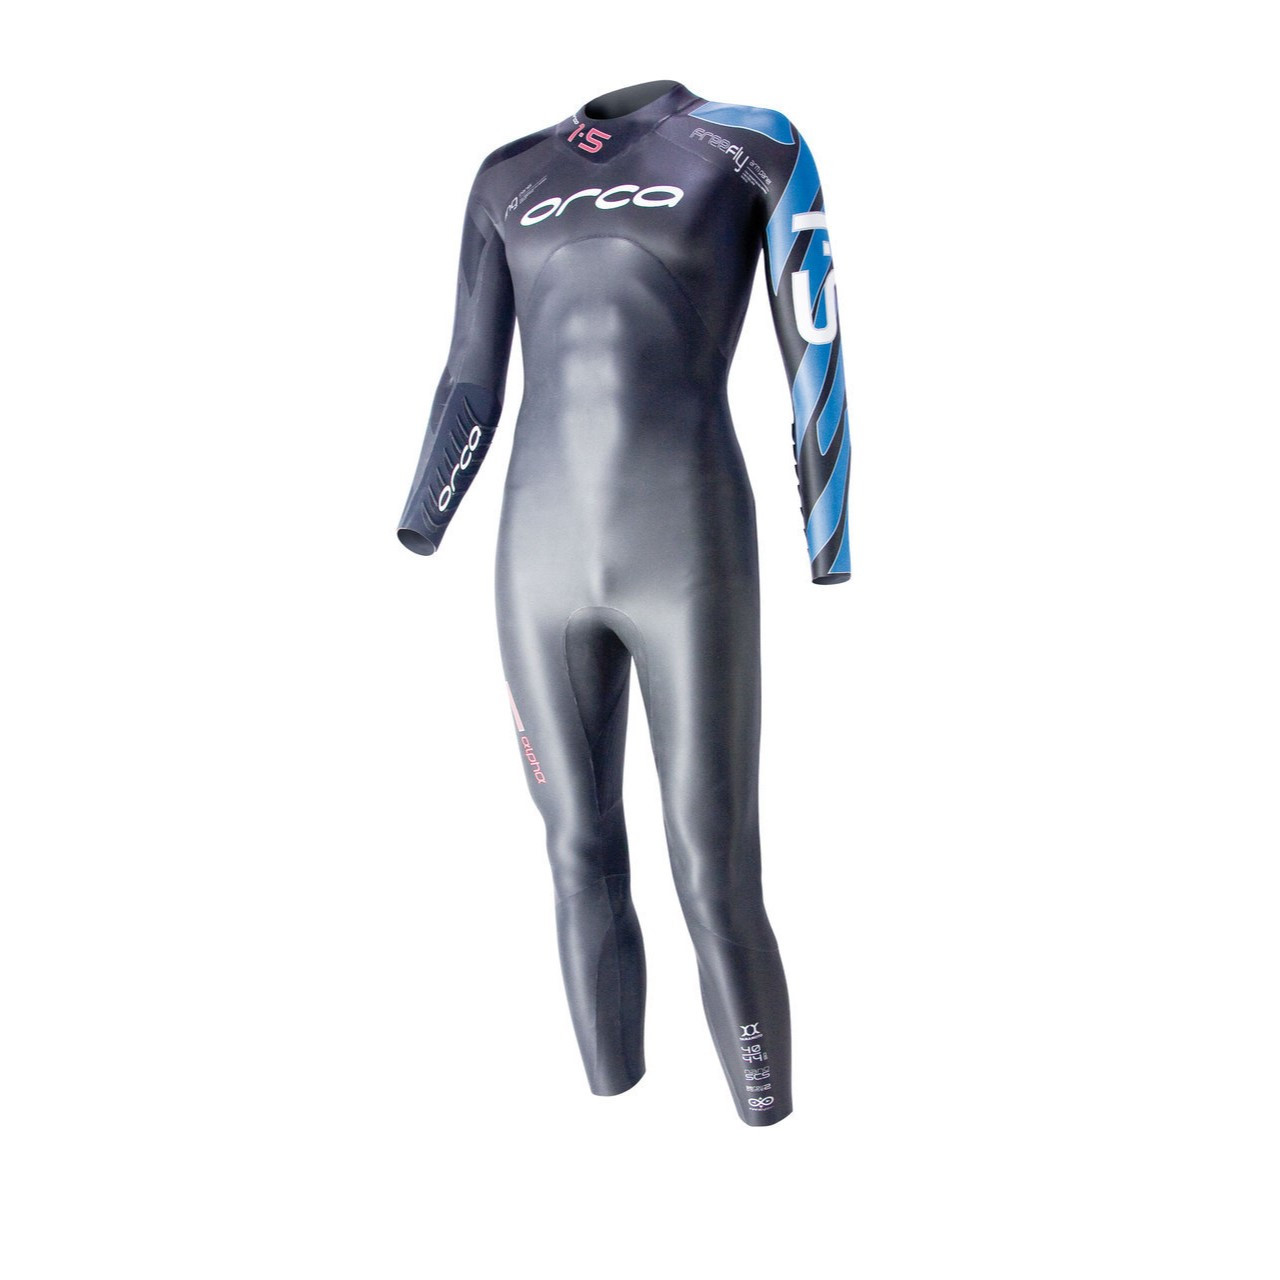 REPAIRED: Orca Men's 1.5 Alpha Wetsuit - Size 9 price